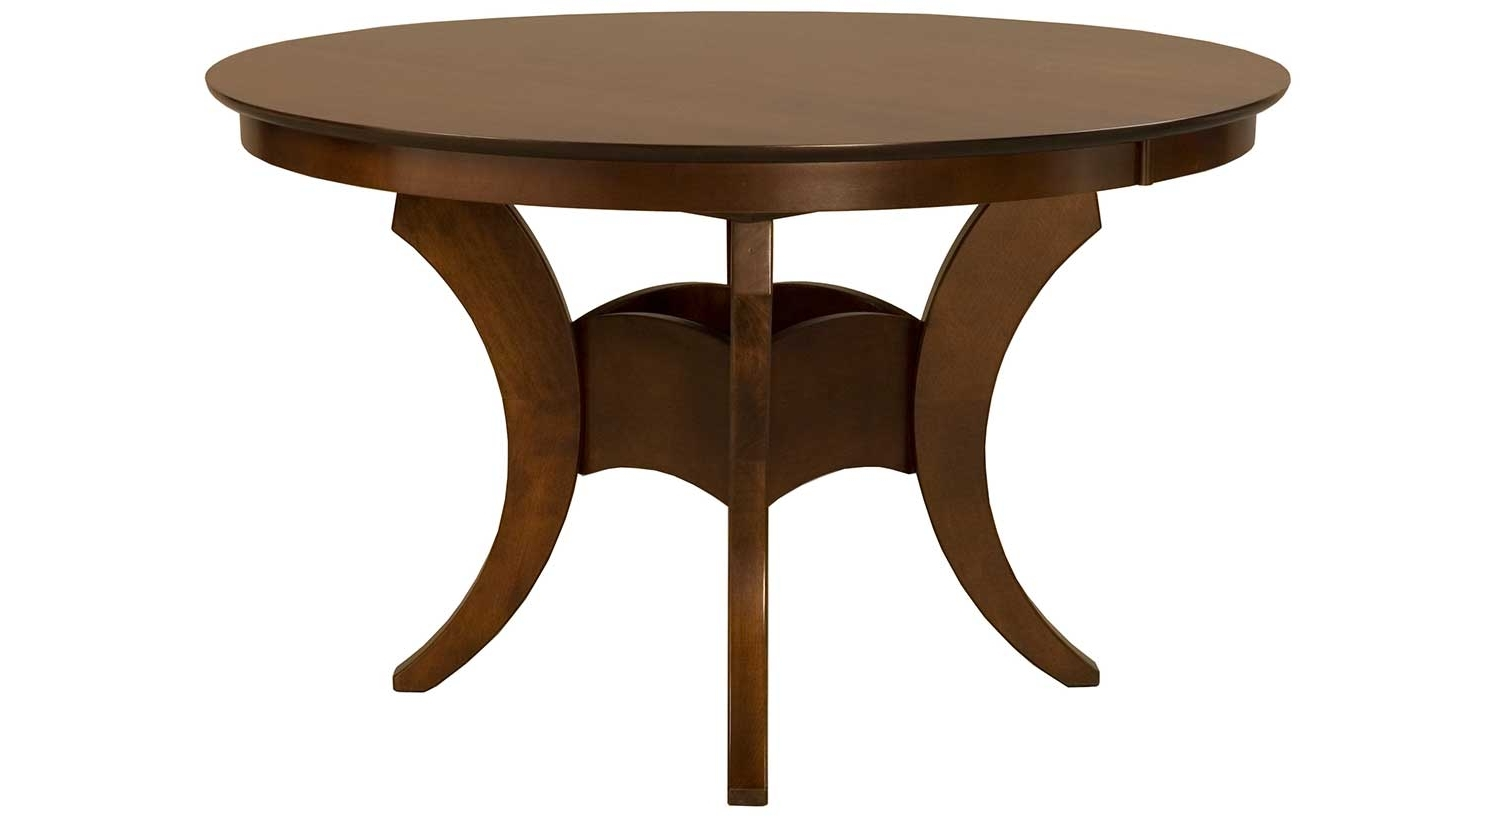 Dining Tables Boston Intended For Circle Dining Tables (Gallery 25 of 25)